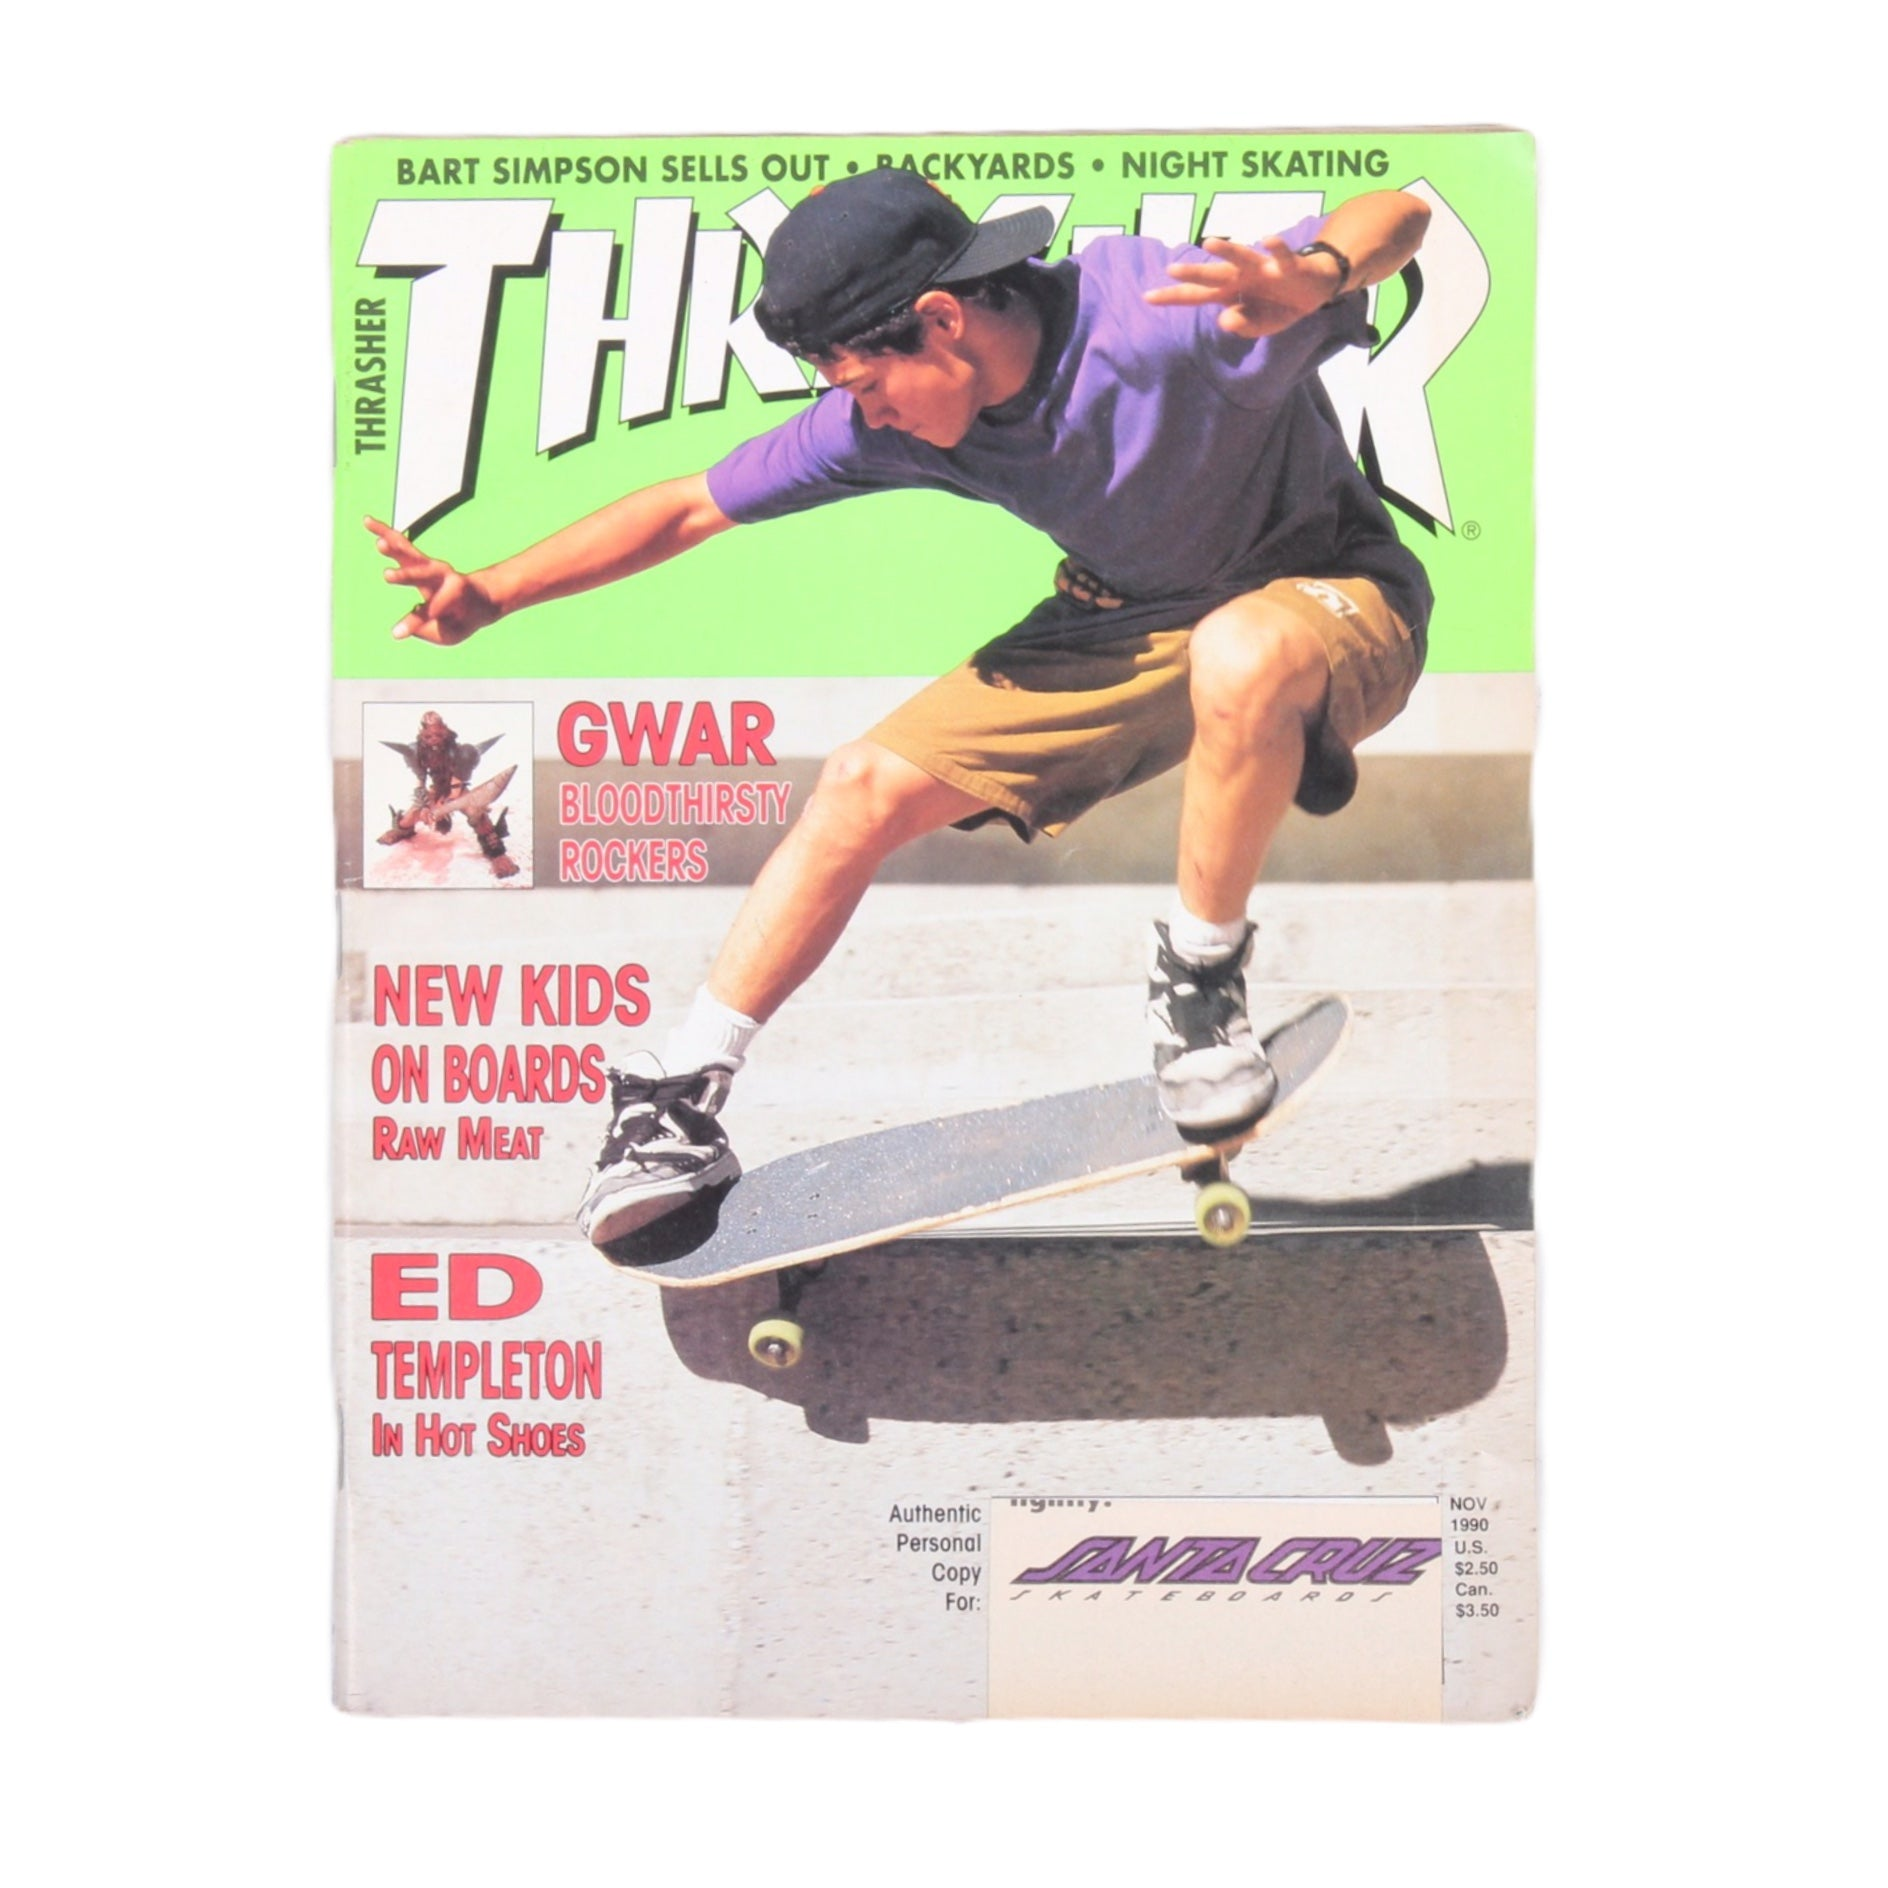 Overripe Thrasher Magazine Nov 1990